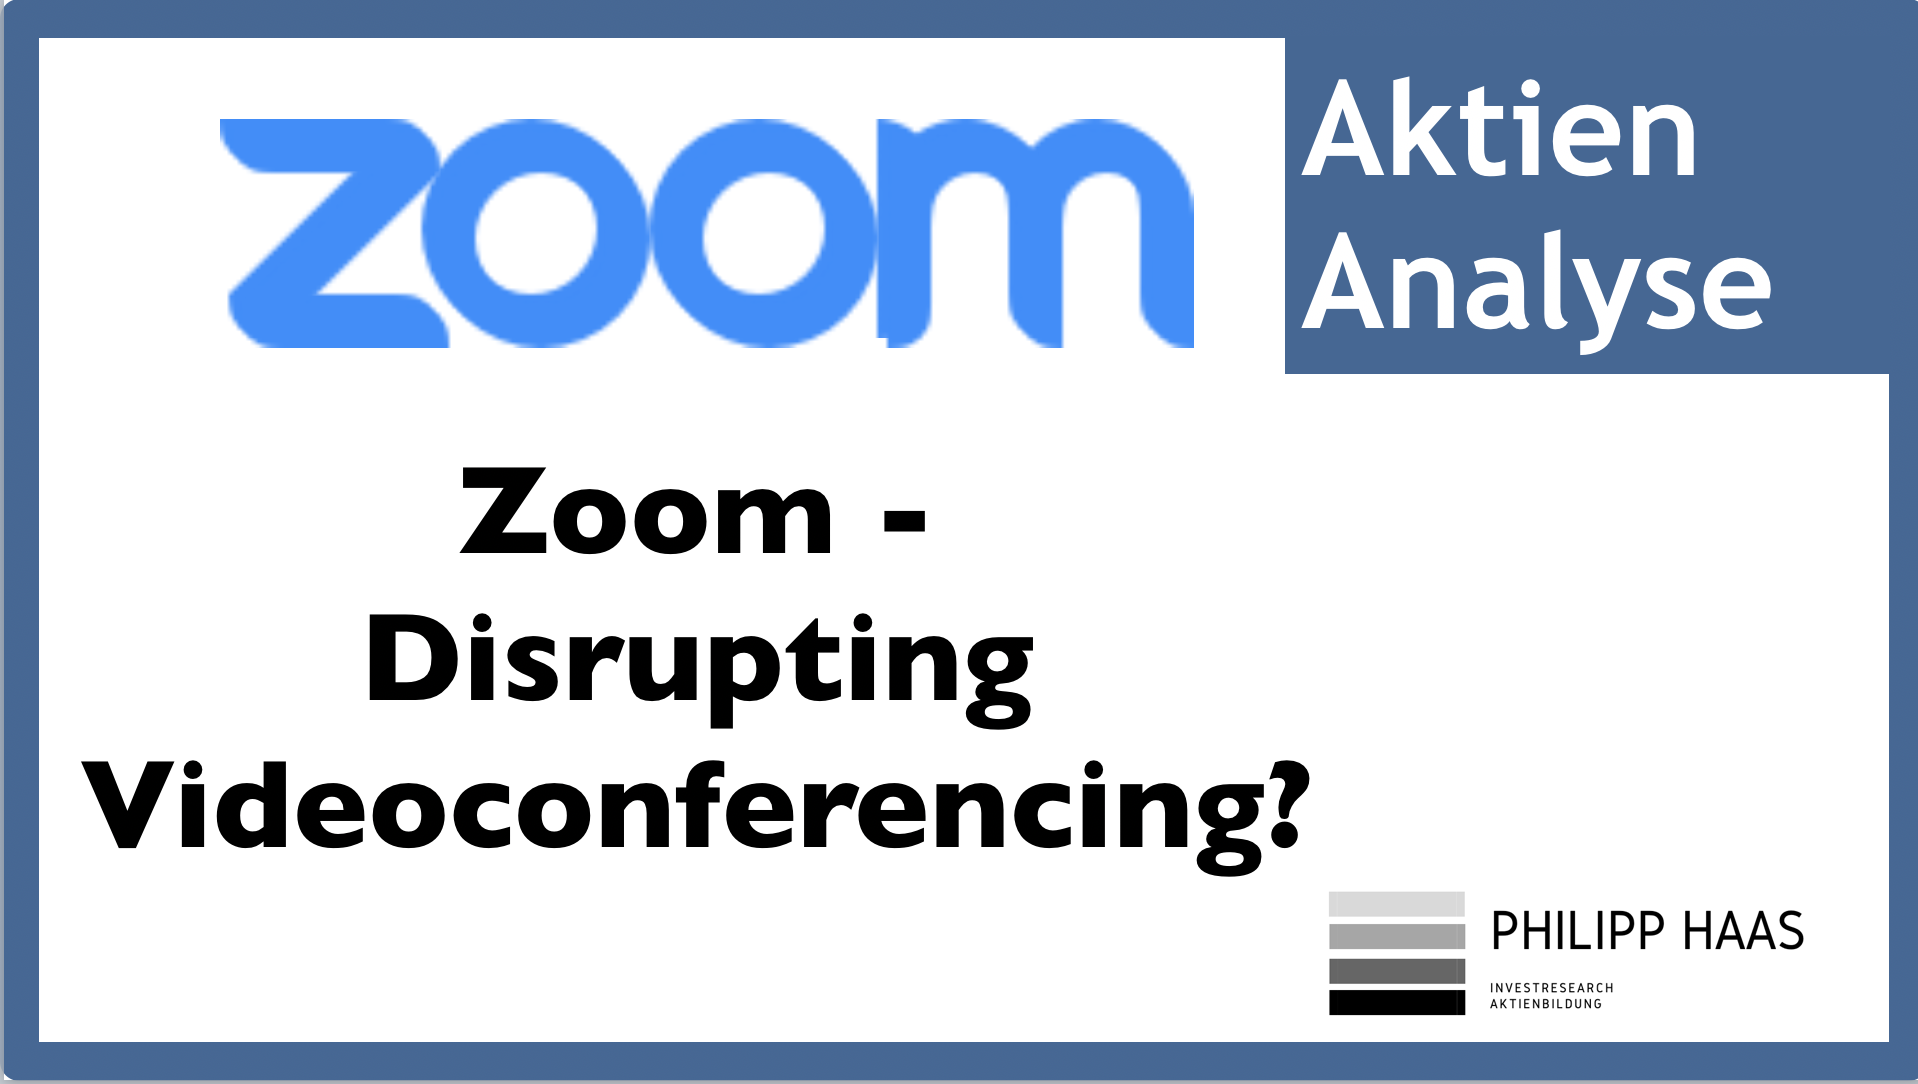 Ipo etf with zoom holdings